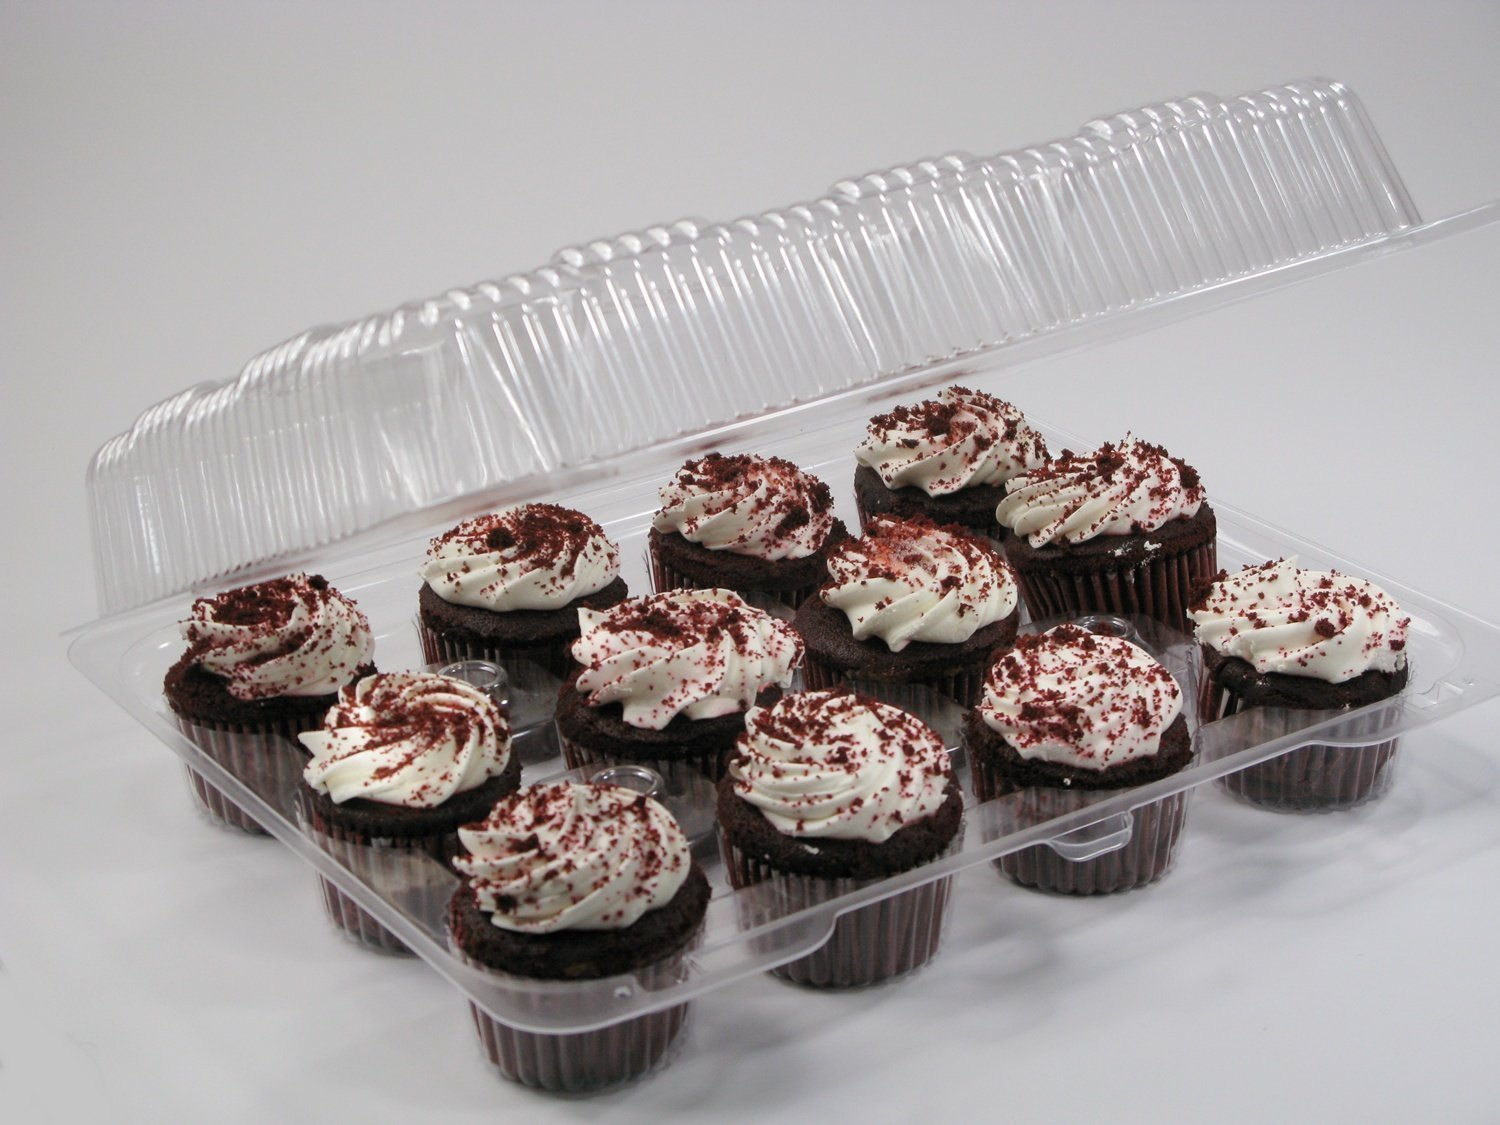 12-big Compartment Cupcake Container with Hinged Lid, Clear 12 compartment cupcake boxes, clear cupcake containers, 12 Cavity Cupcake Container (24,- 12 Compartment Cupcake Boxes ) by The Bakers Pantry (Image #9)